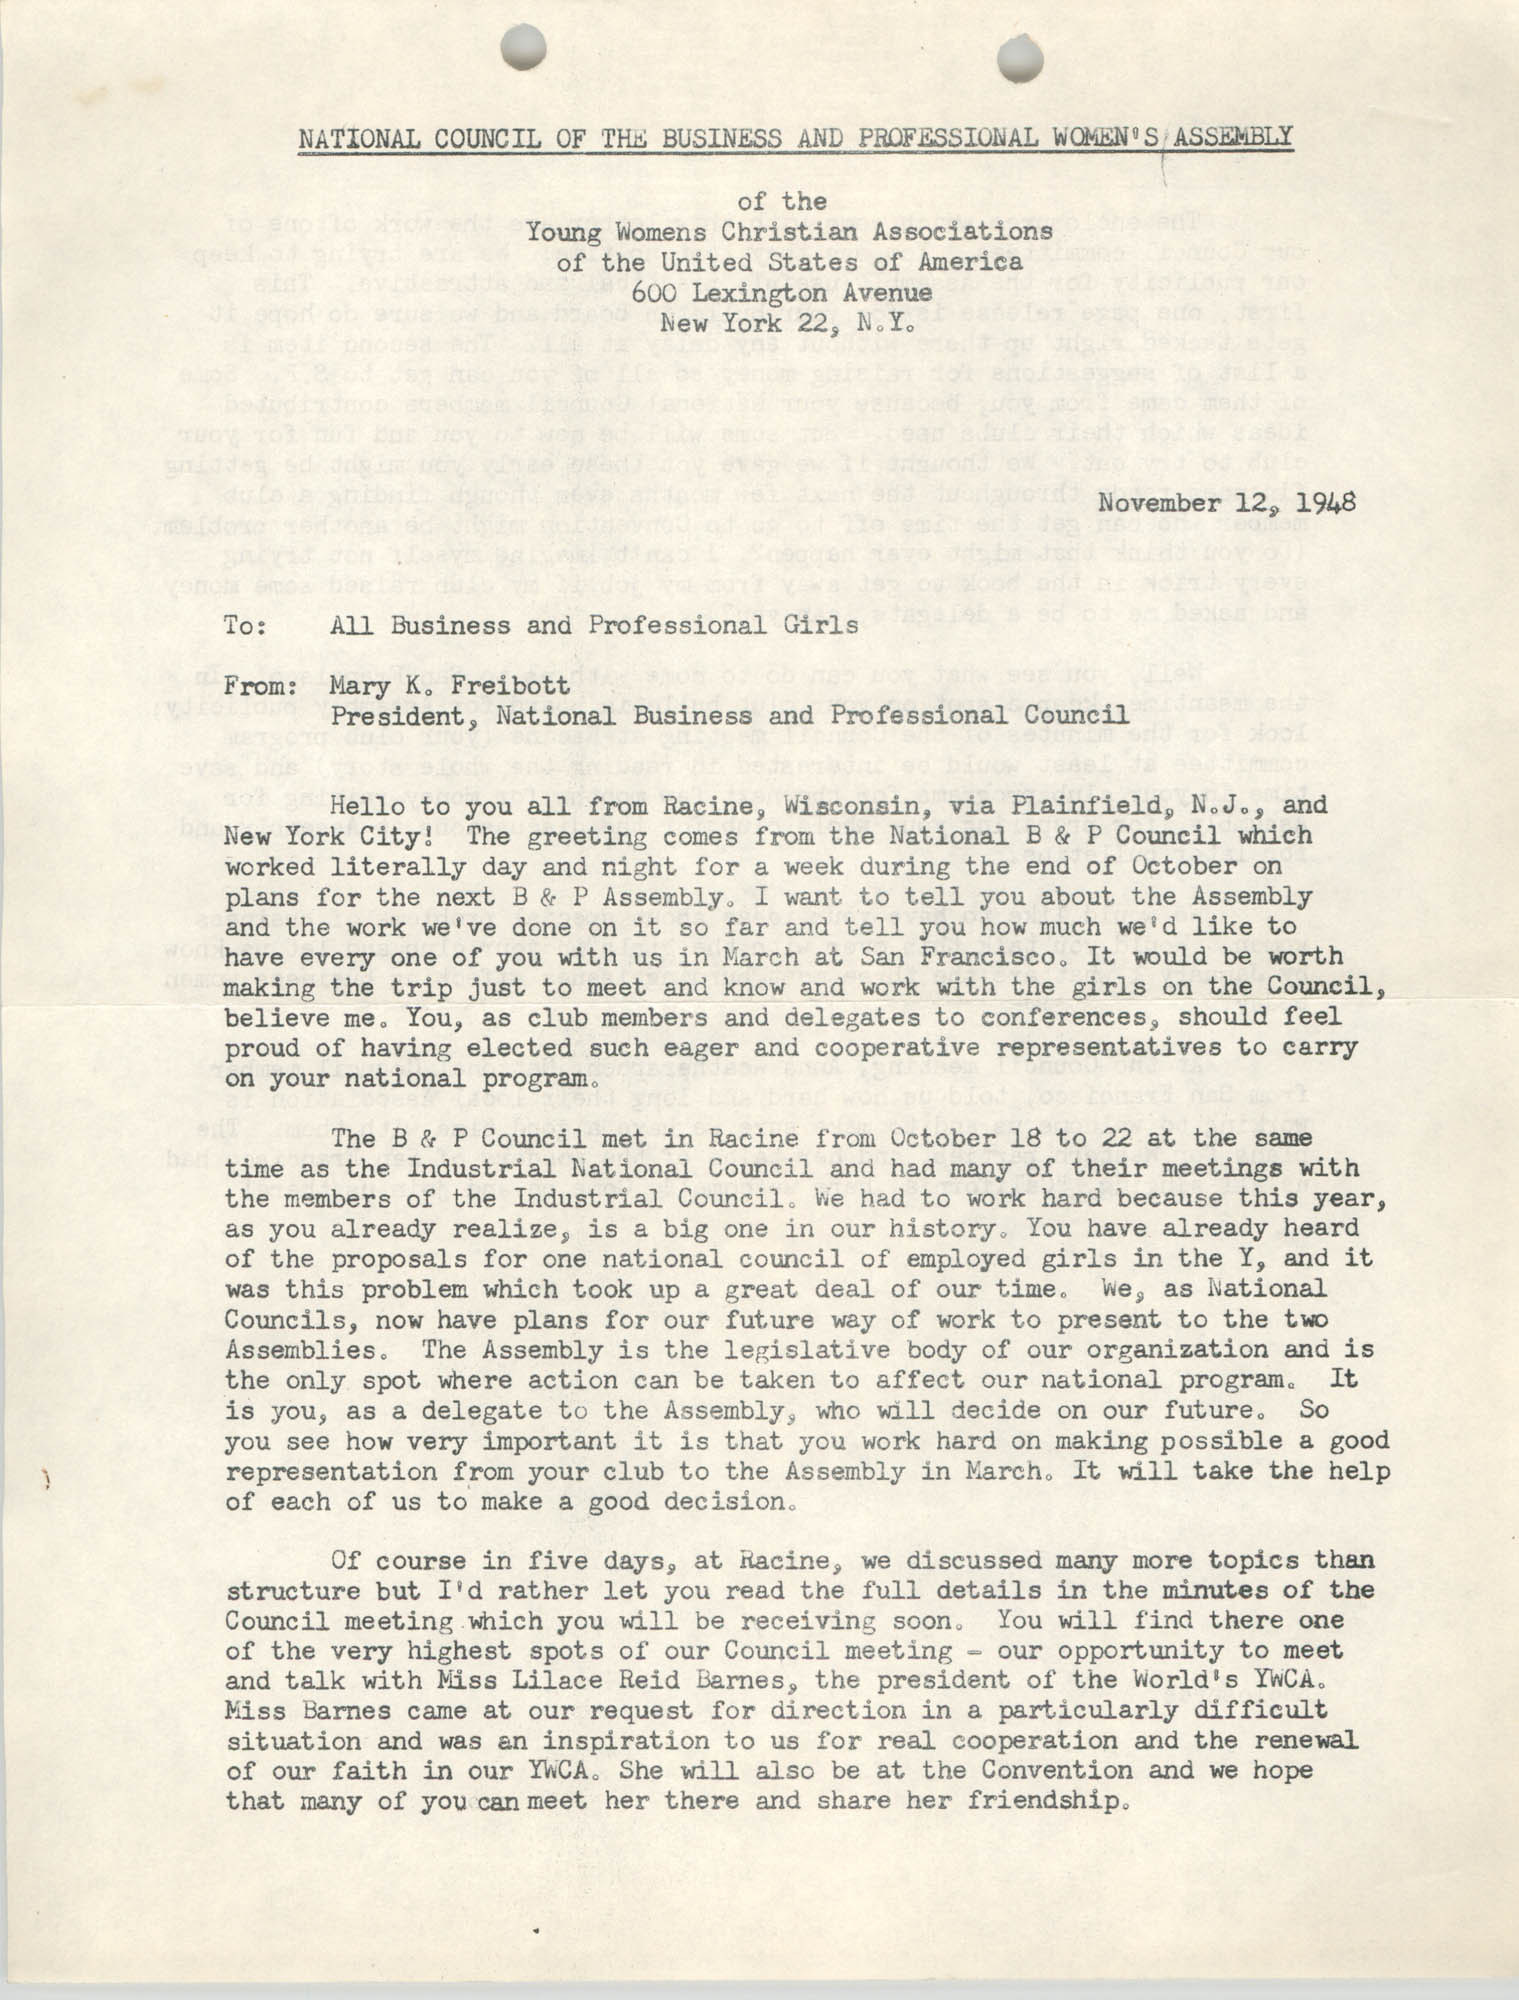 National Council of the Business and Professional Women's Assembly of the Y.W.C.A. Memorandum, November 12, 1948